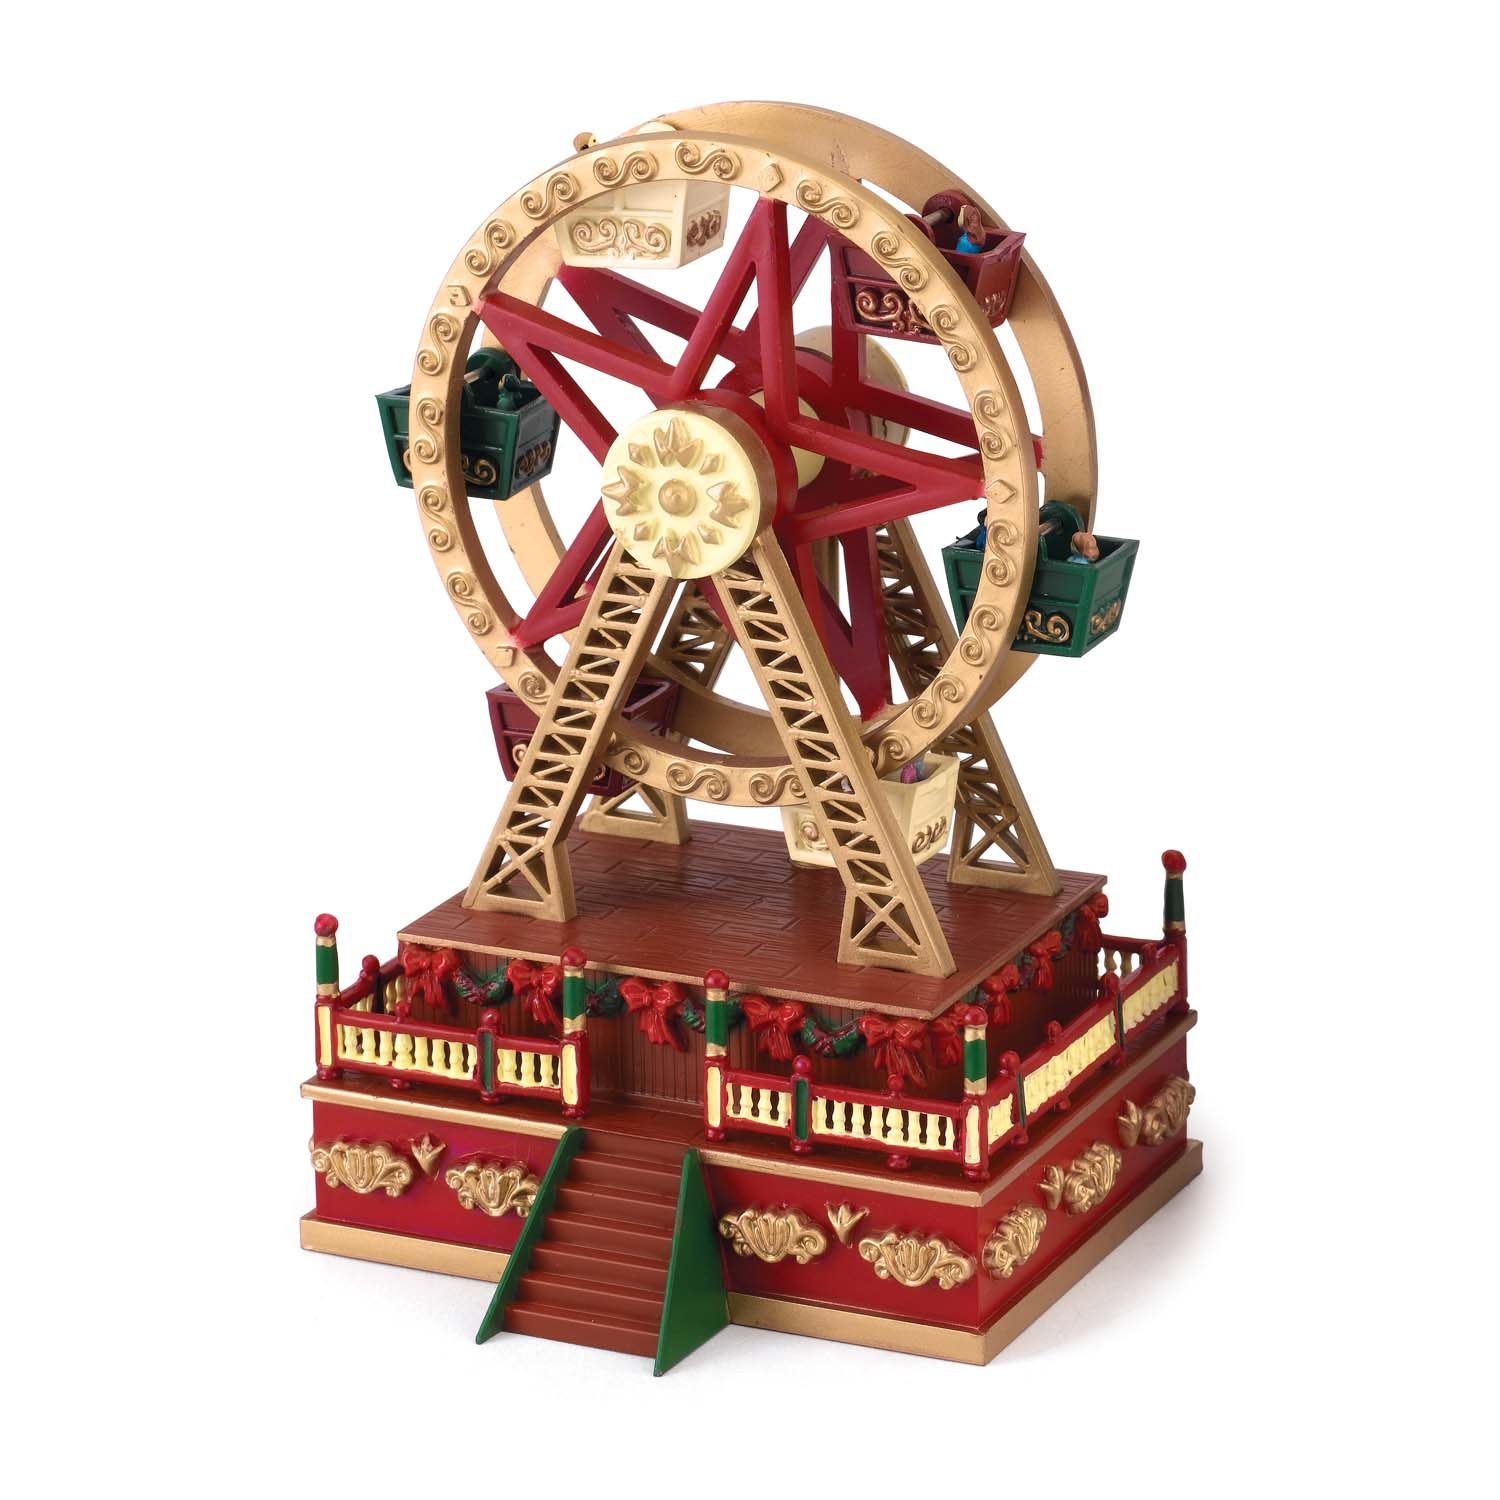 Mr. Christmas – Muziekdoos Mini Ferris Wheel | 51053198022 | MX-19802